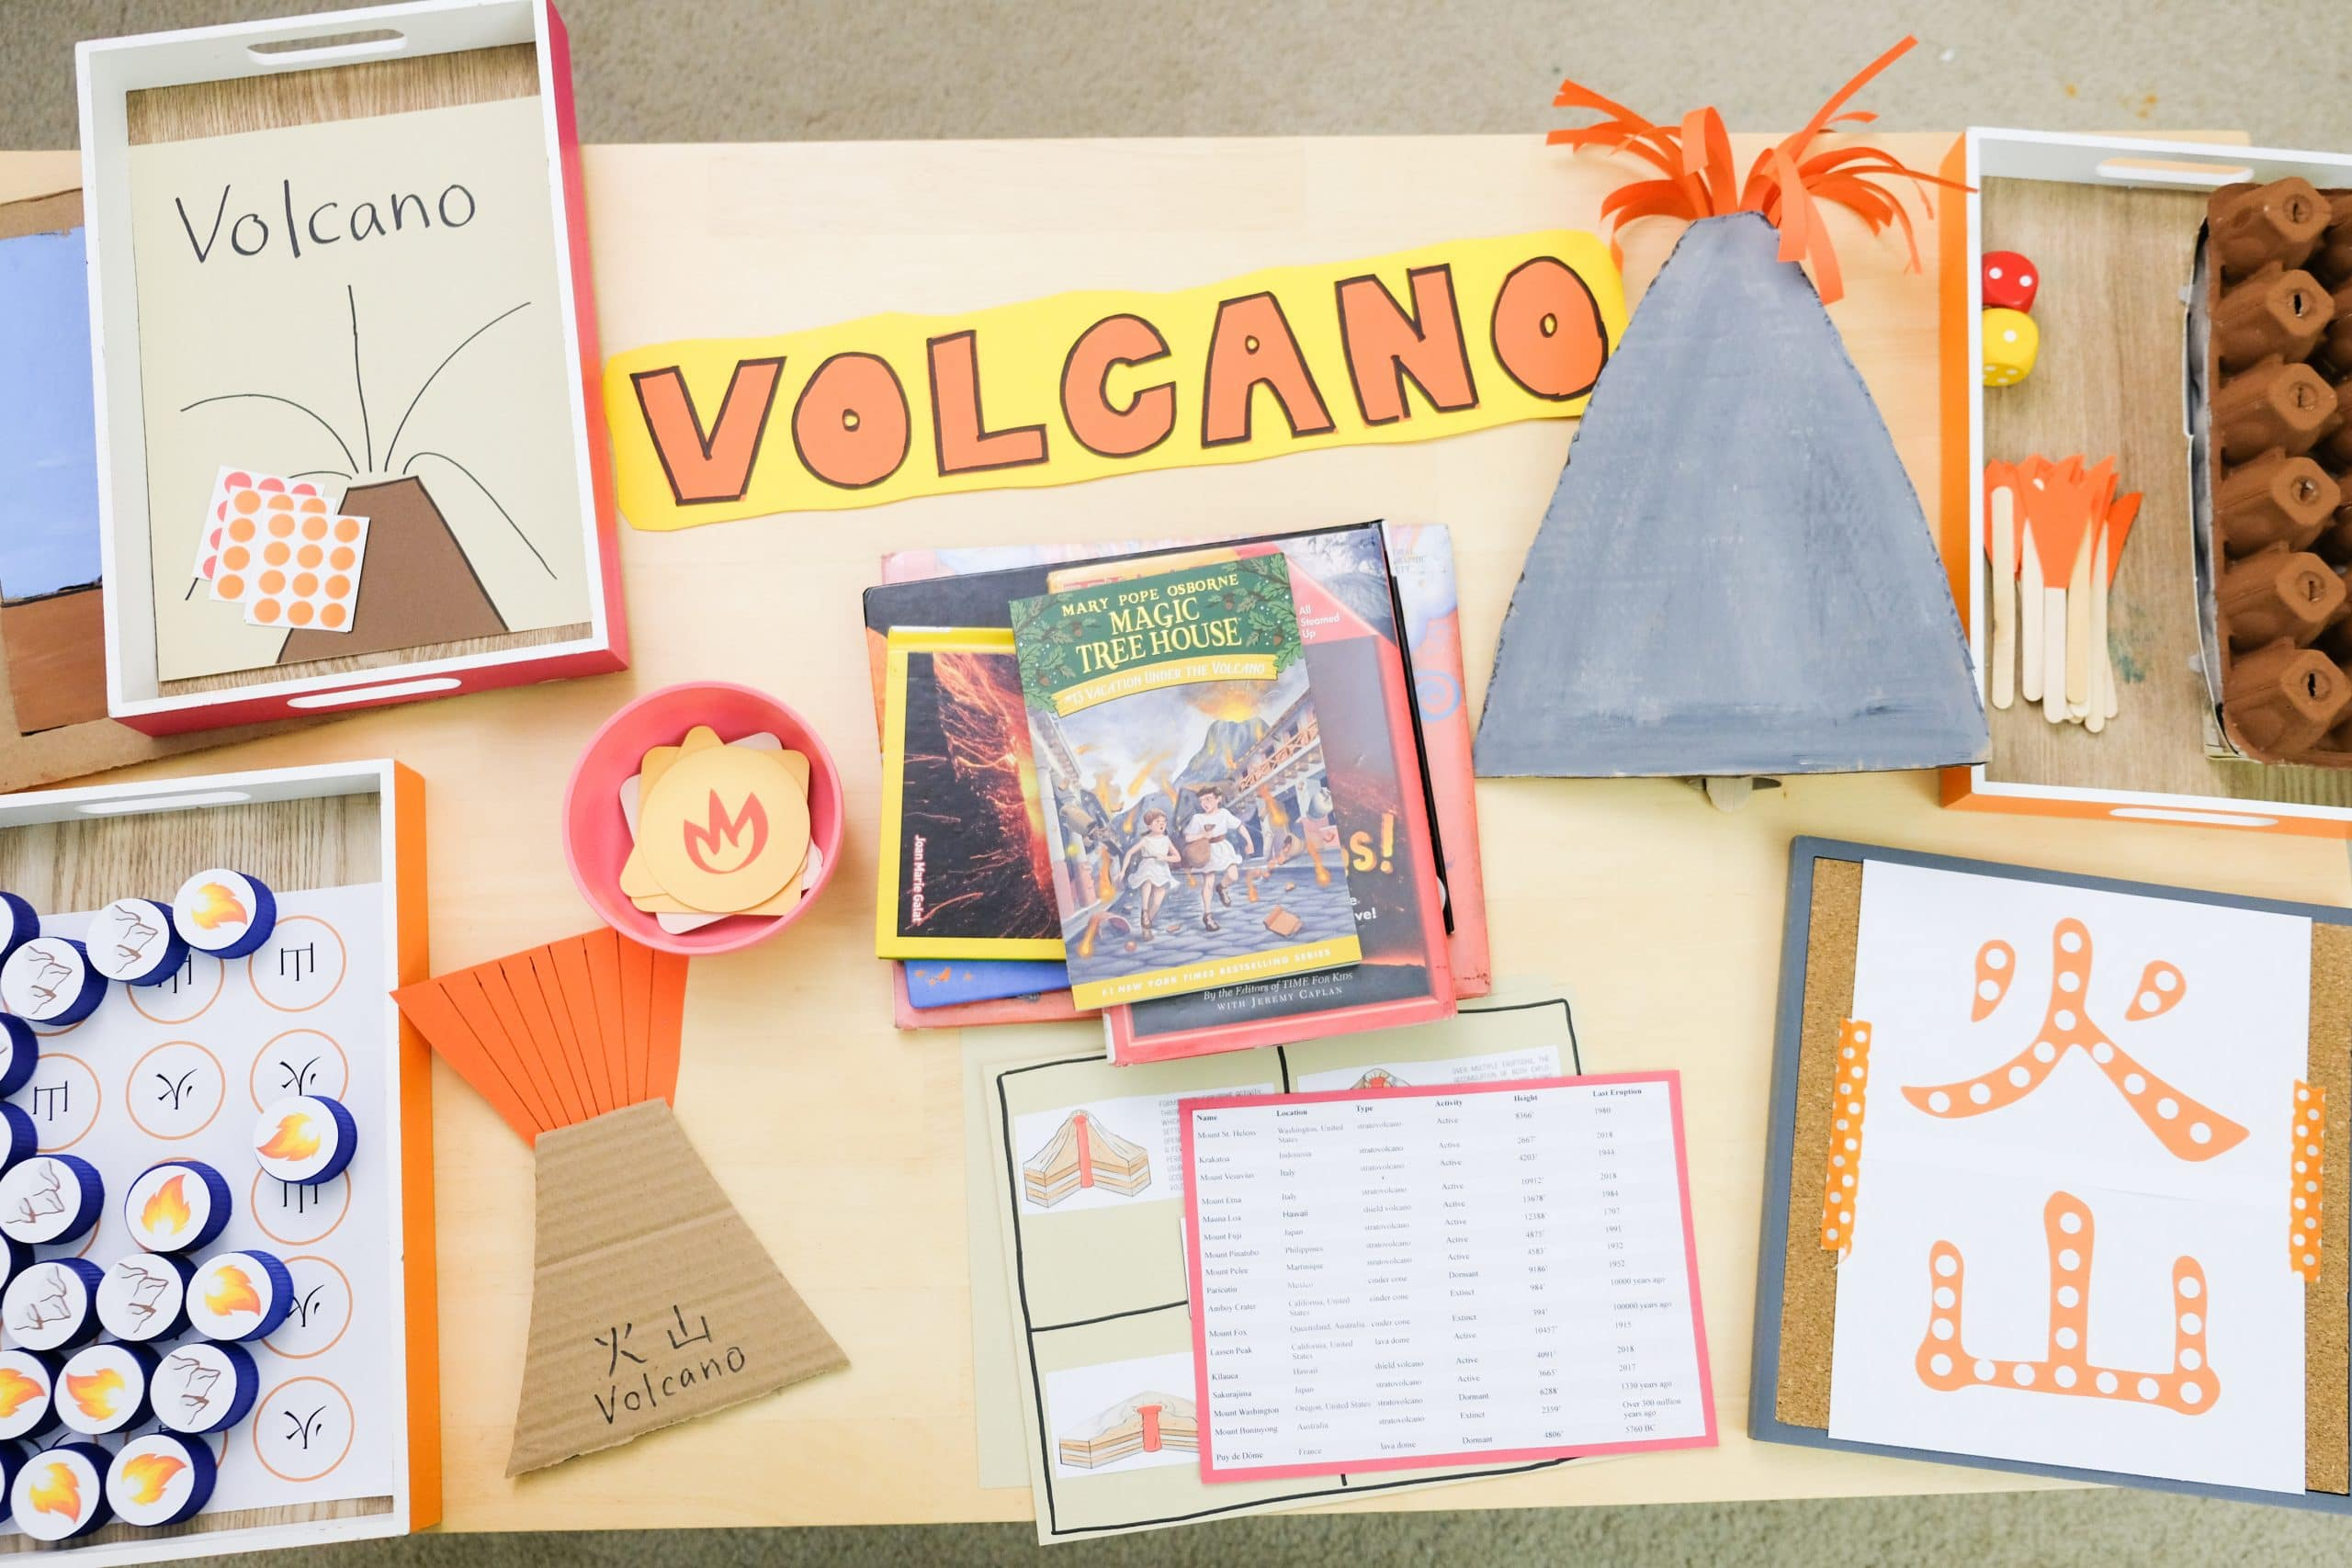 Volcano theme based learning activities